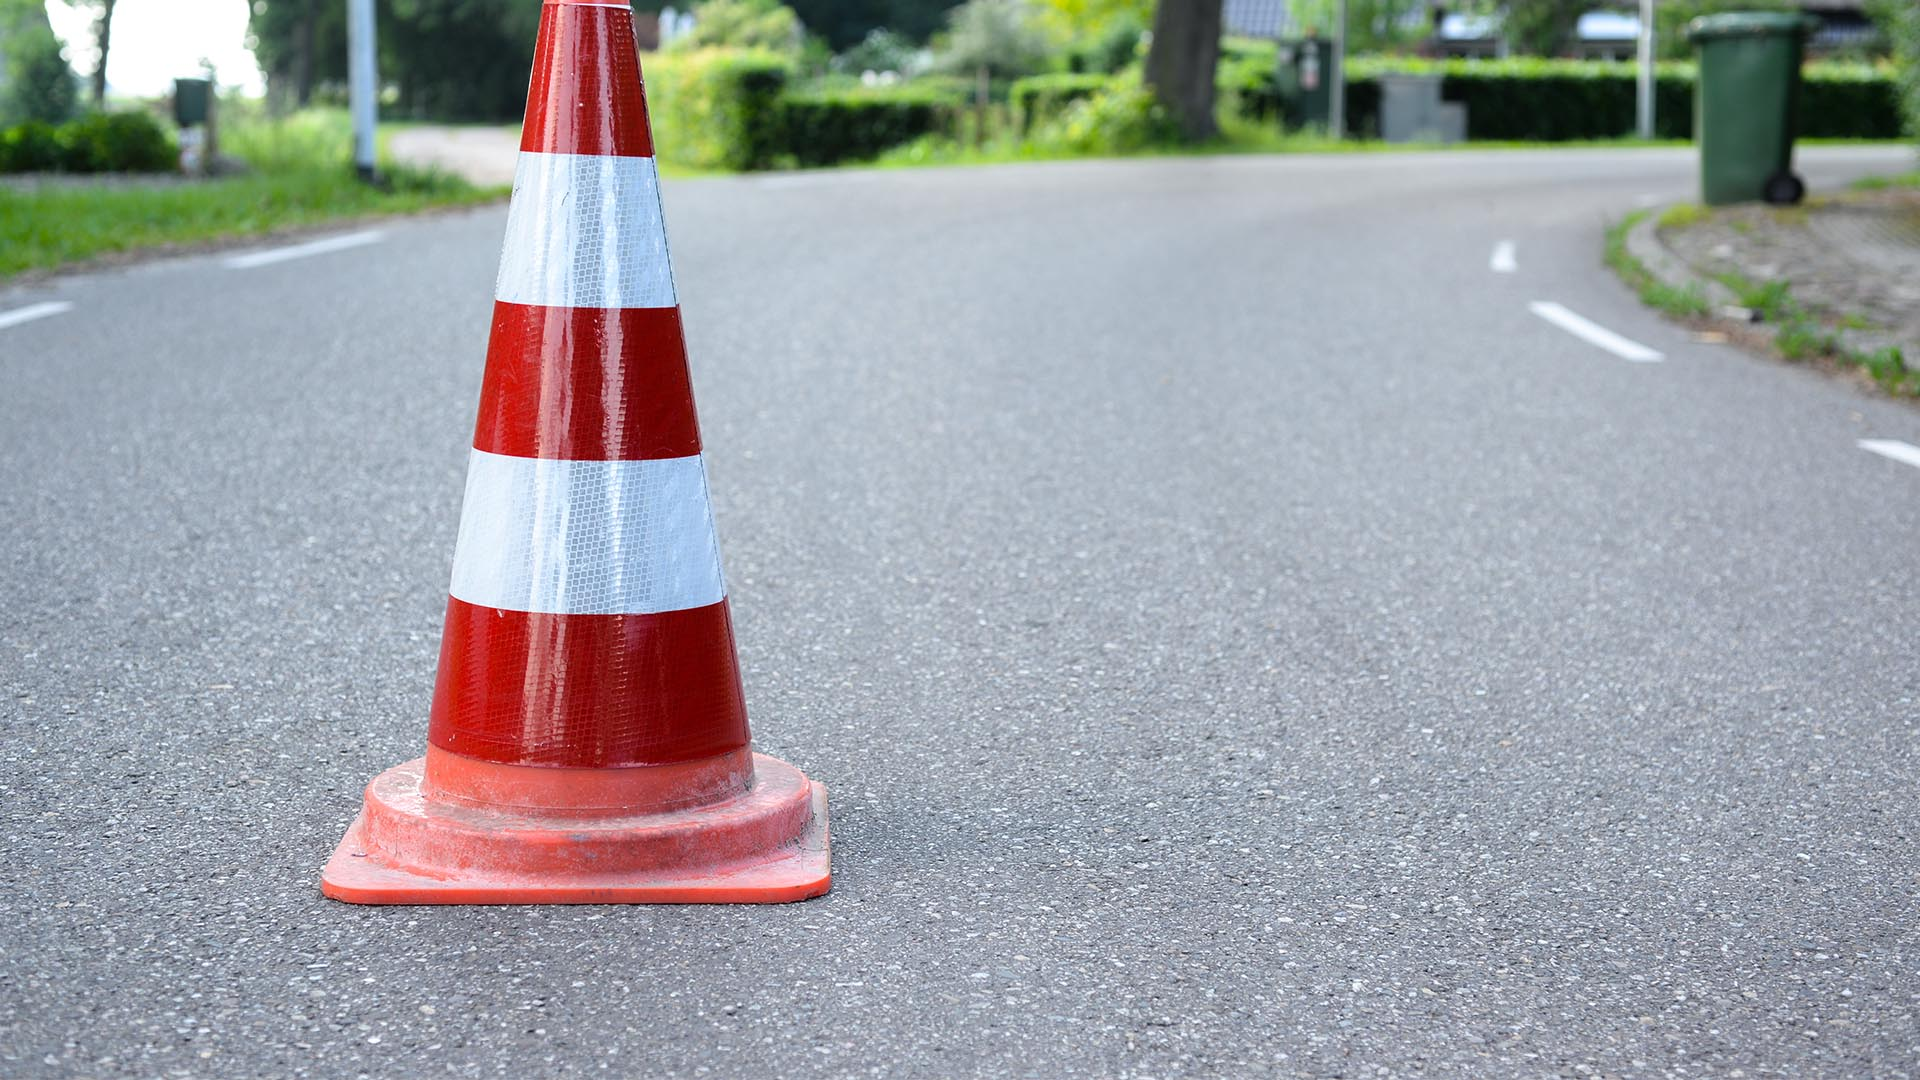 one orange hazard cone in middle of the roadway